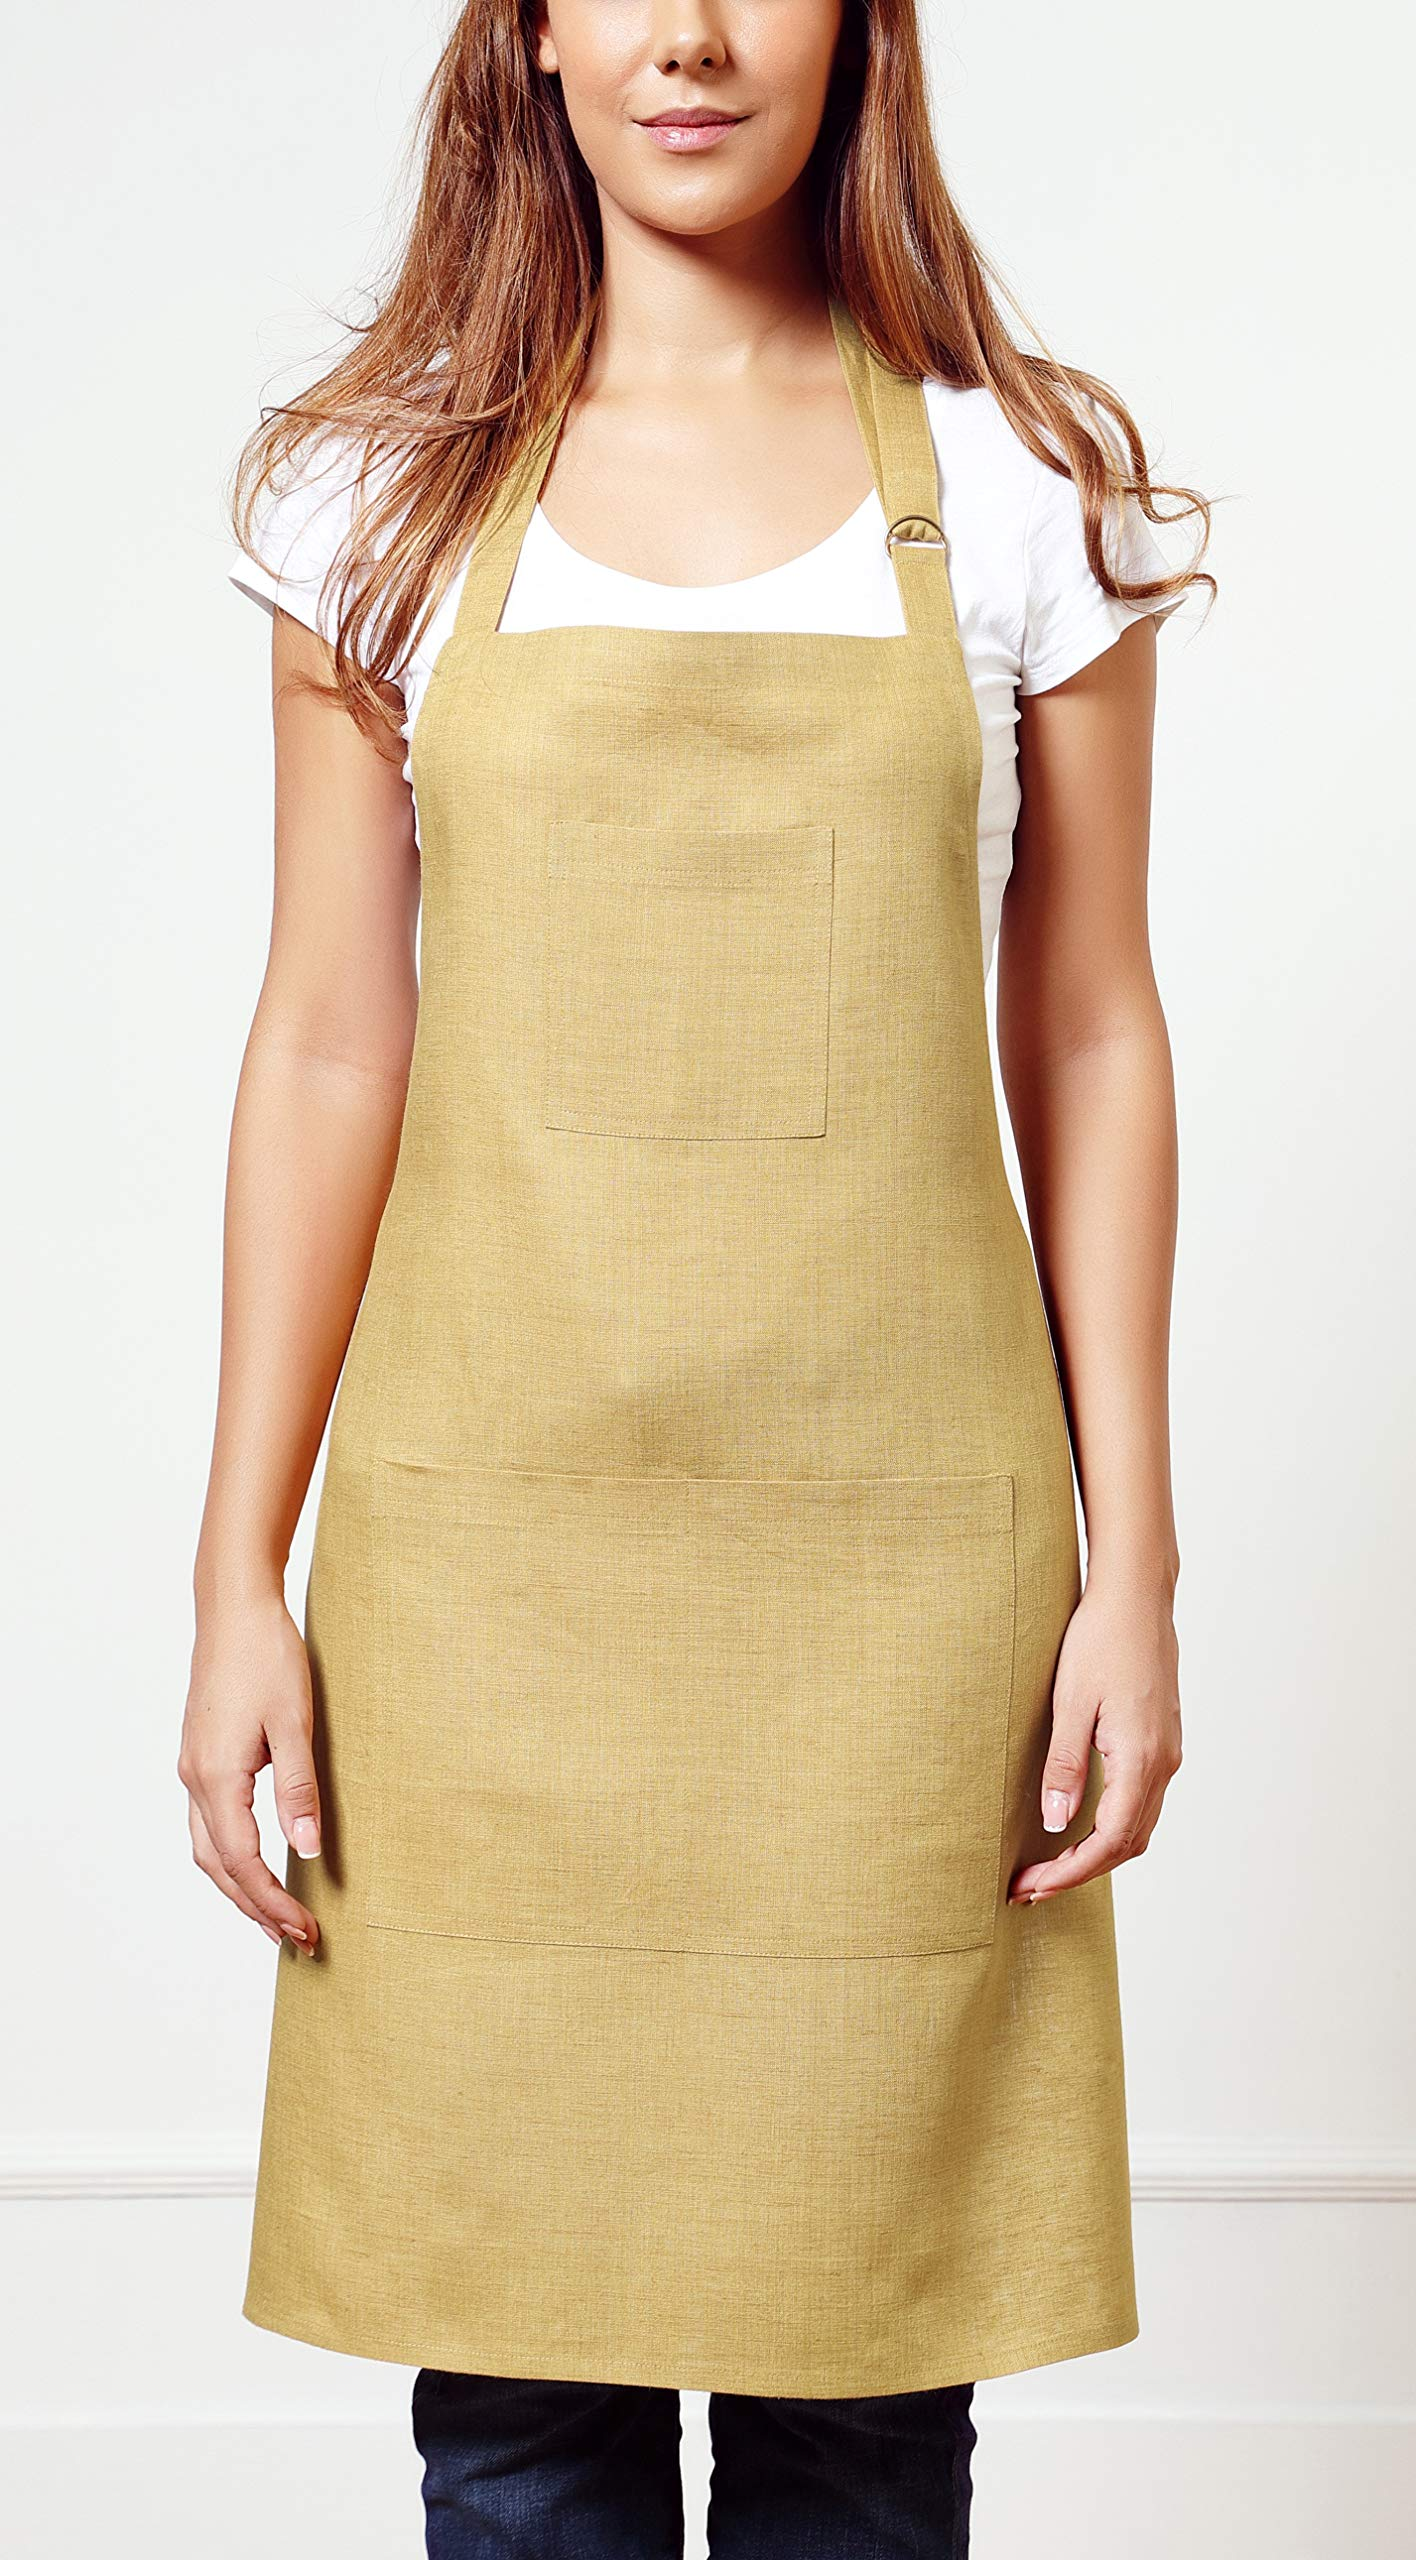 Japanese Style kitchen wear apron for women linen MADE with PURE LOVE